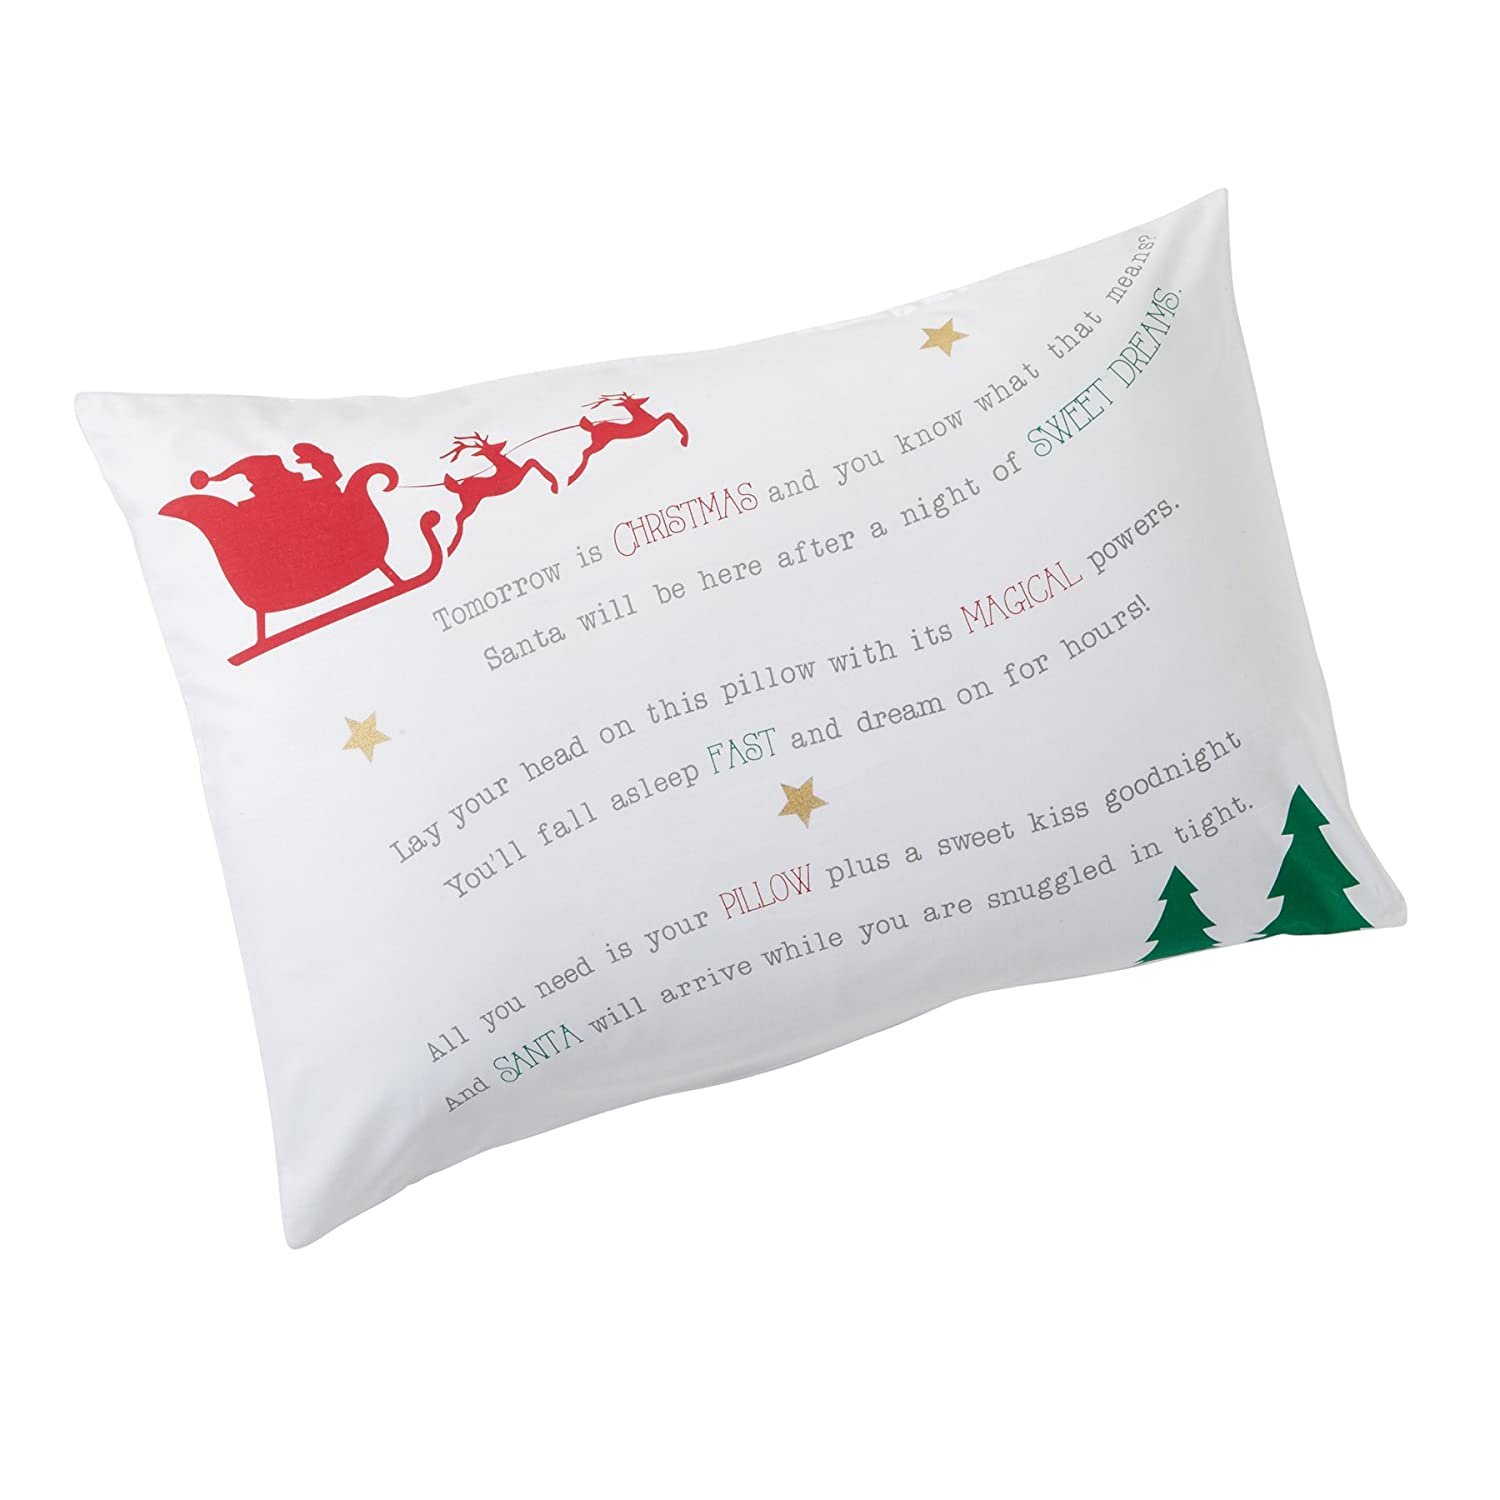 Amazon.com: Papá Noel Dreams funda de almohada: Baby